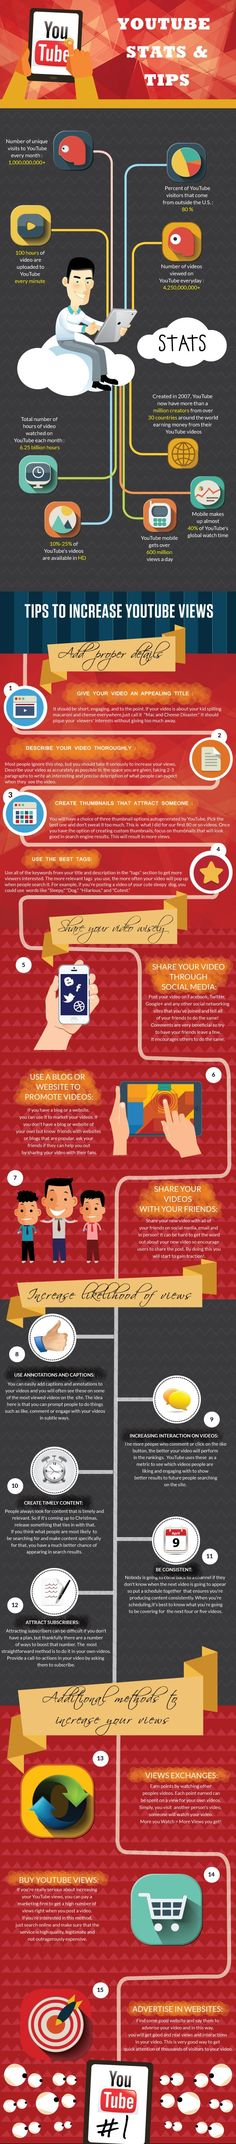 Start Your Online Marketing Using YouTube #infographic #YouTube #SocialMedia